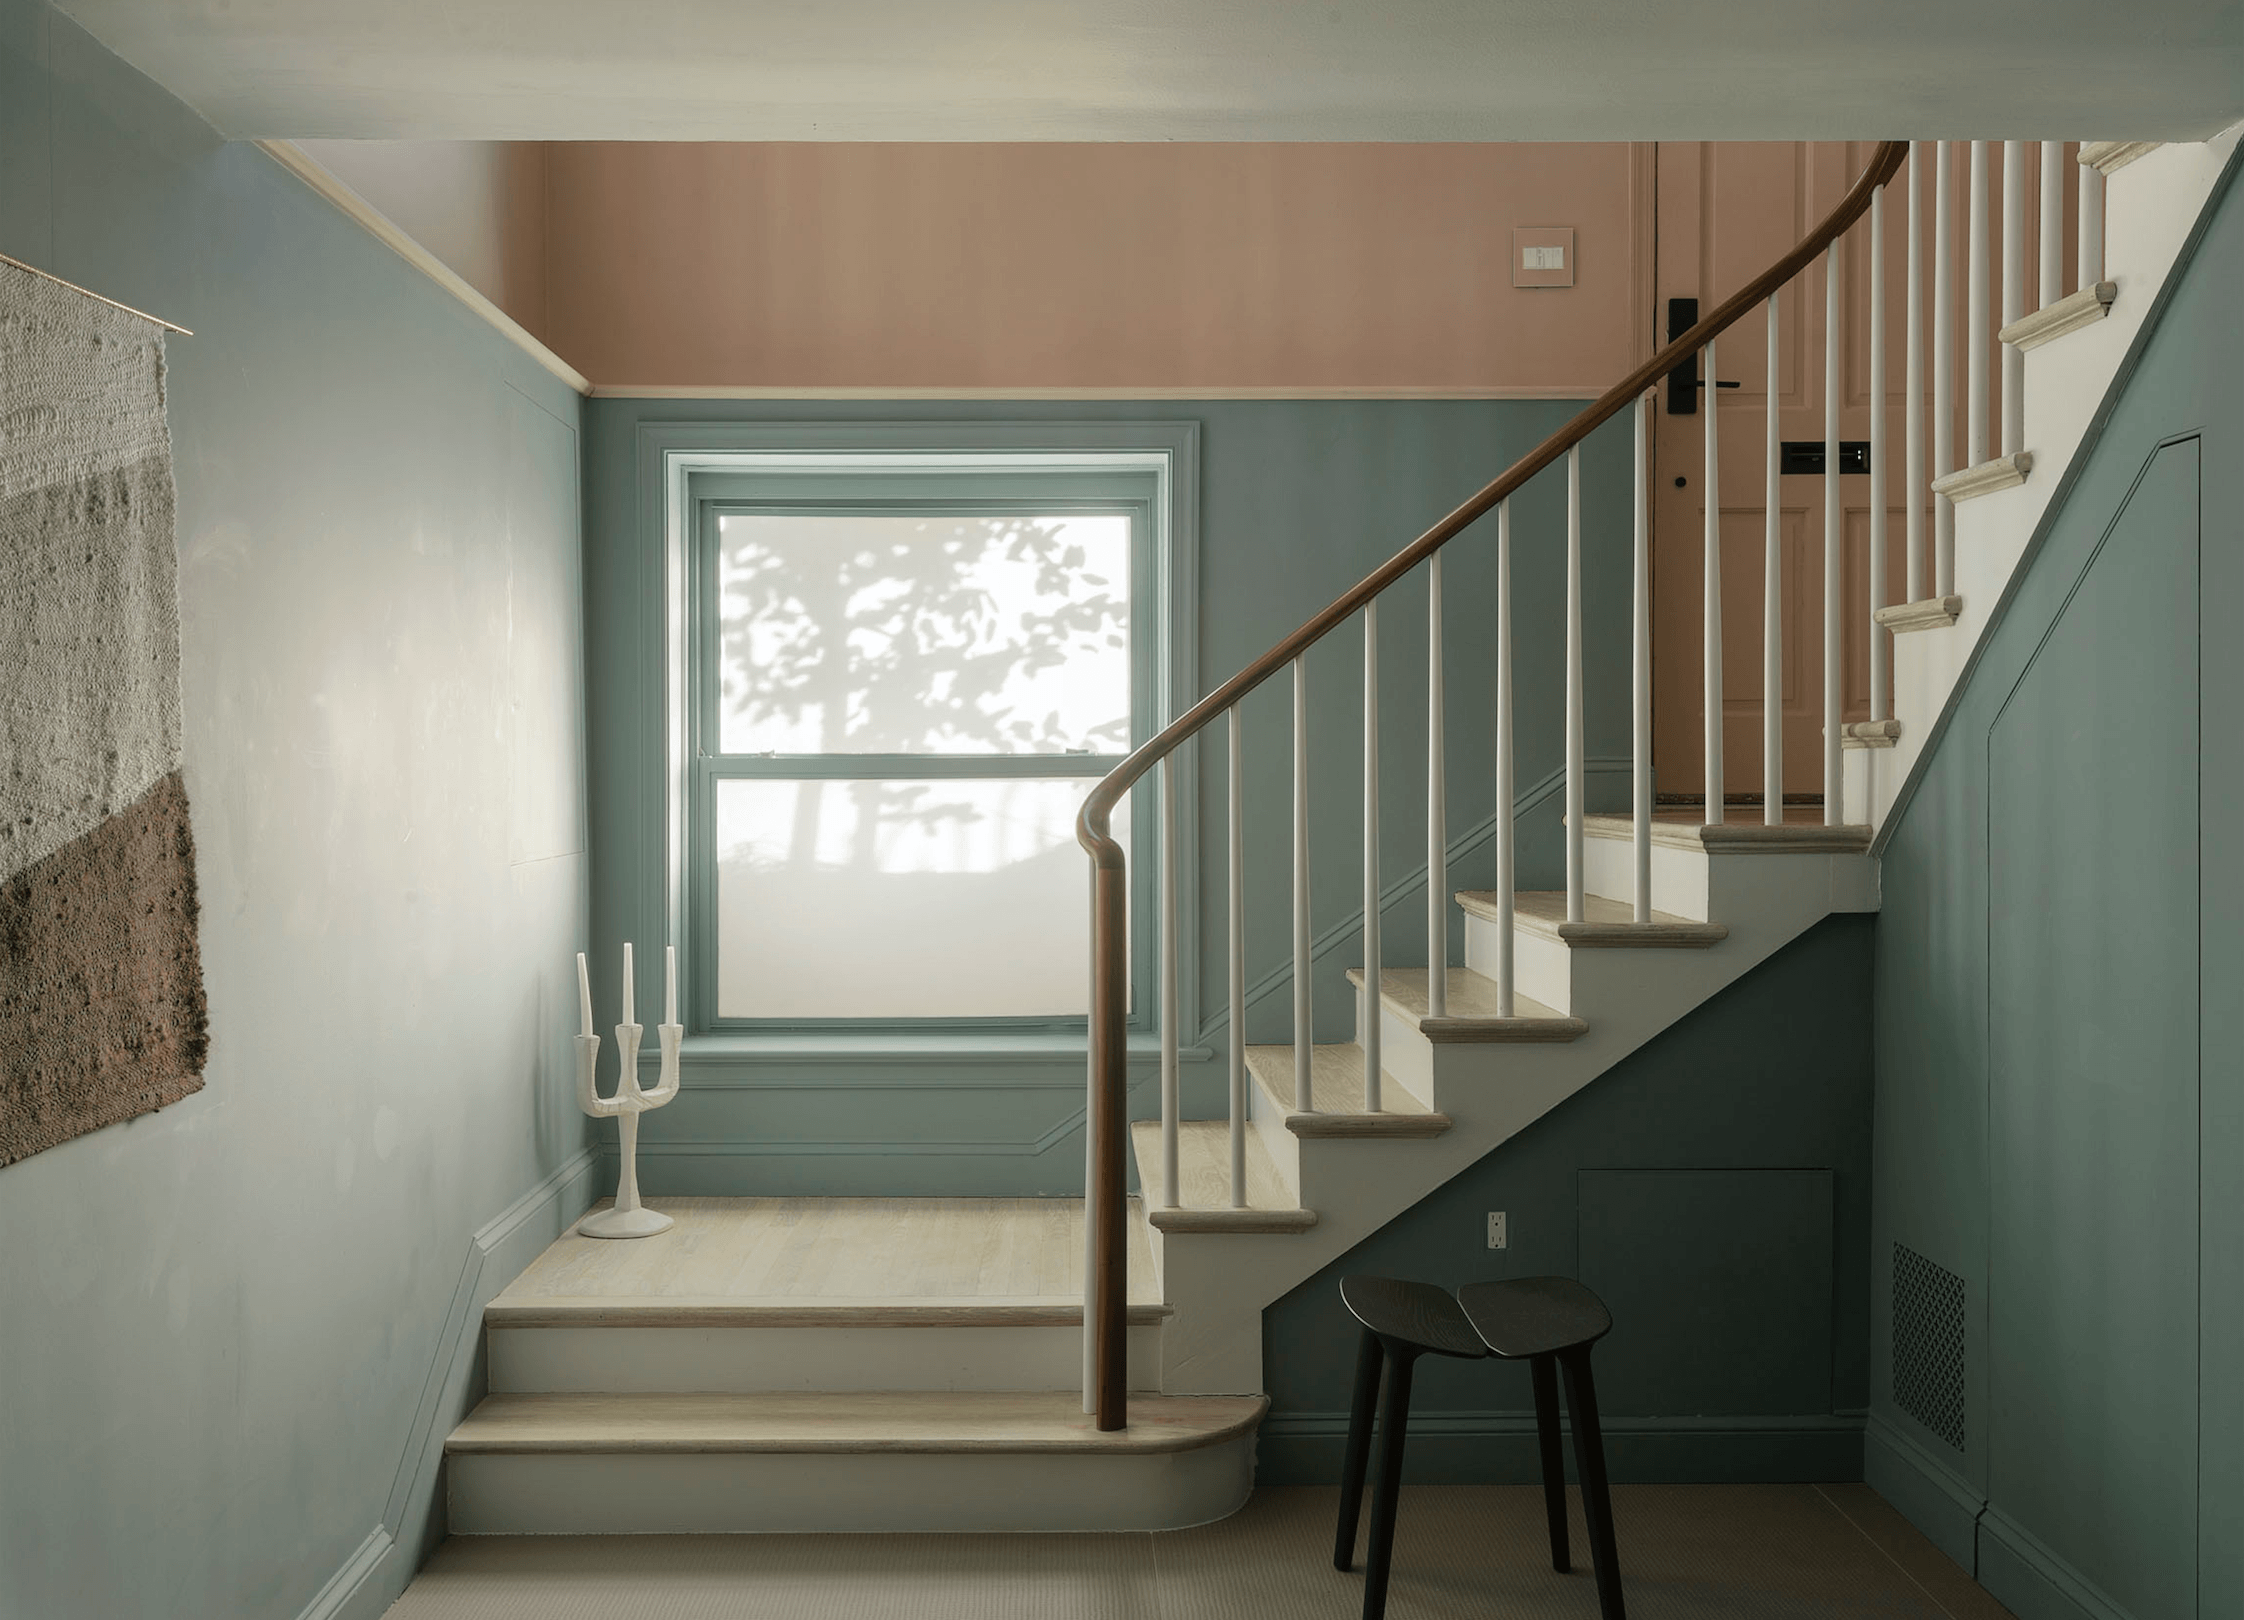 The lower level is paintedOval Room Blue from Farrow & Ball, signaling a change in palette. Studio Oink designed flush storage cabinets under the stairwell. The textile wall hanging is a private commission from Alessandra Taccia for Studio Oink.